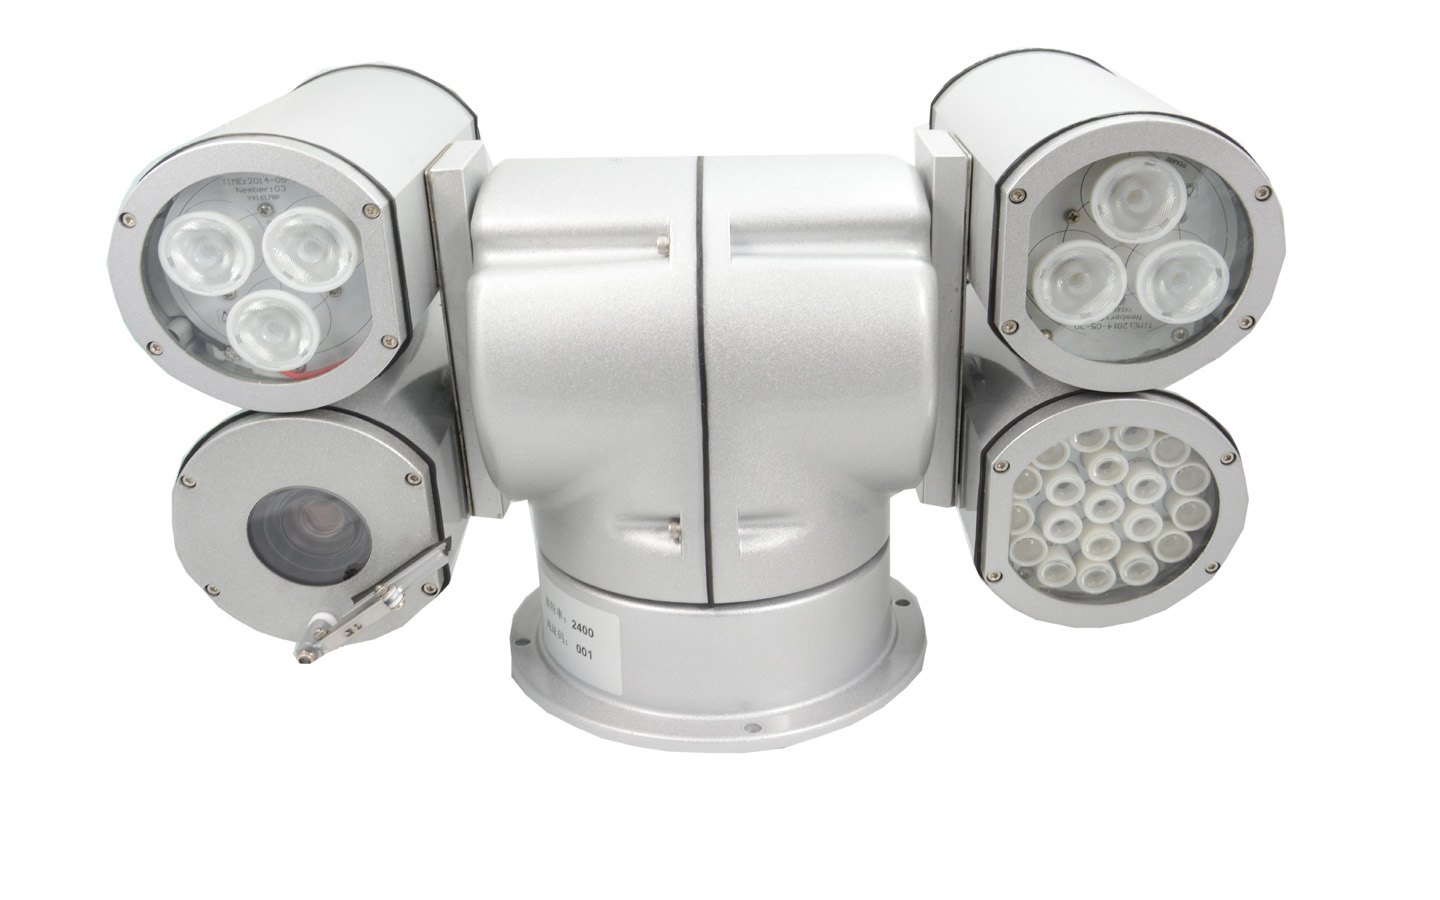 2.0MP HD IR vehicle PTZ Camera with 3 LED light for monitoring system